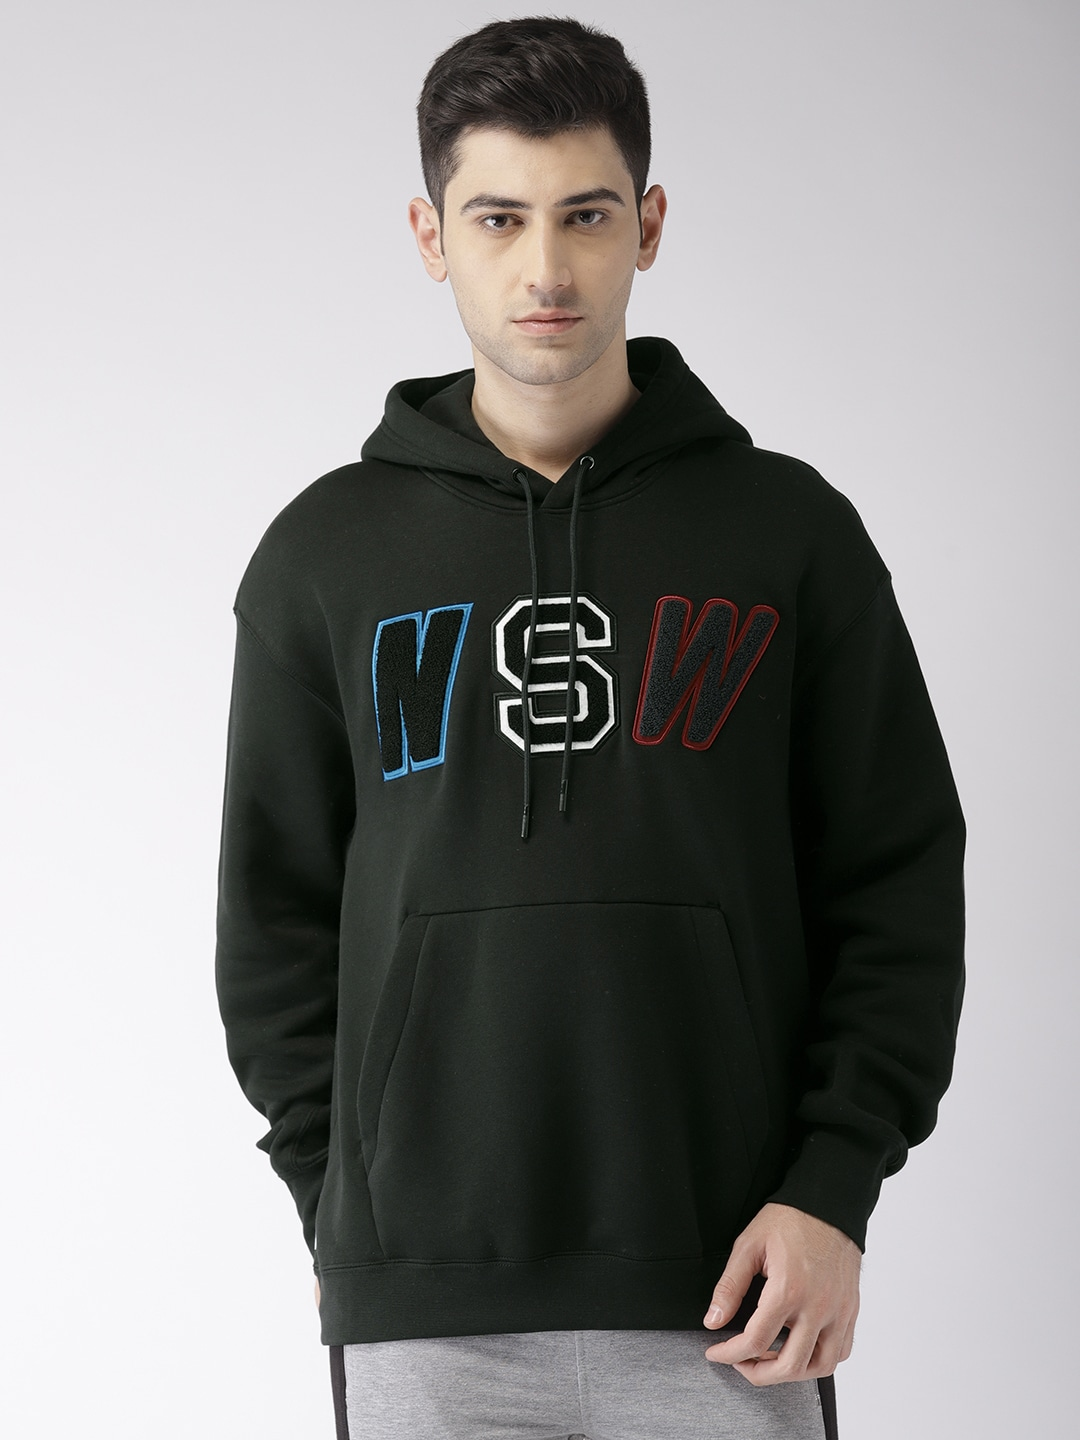 the best attitude f269c 80962 Nike Sweatshirts   Buy Nike Sweatshirts for Men   Women Online in India